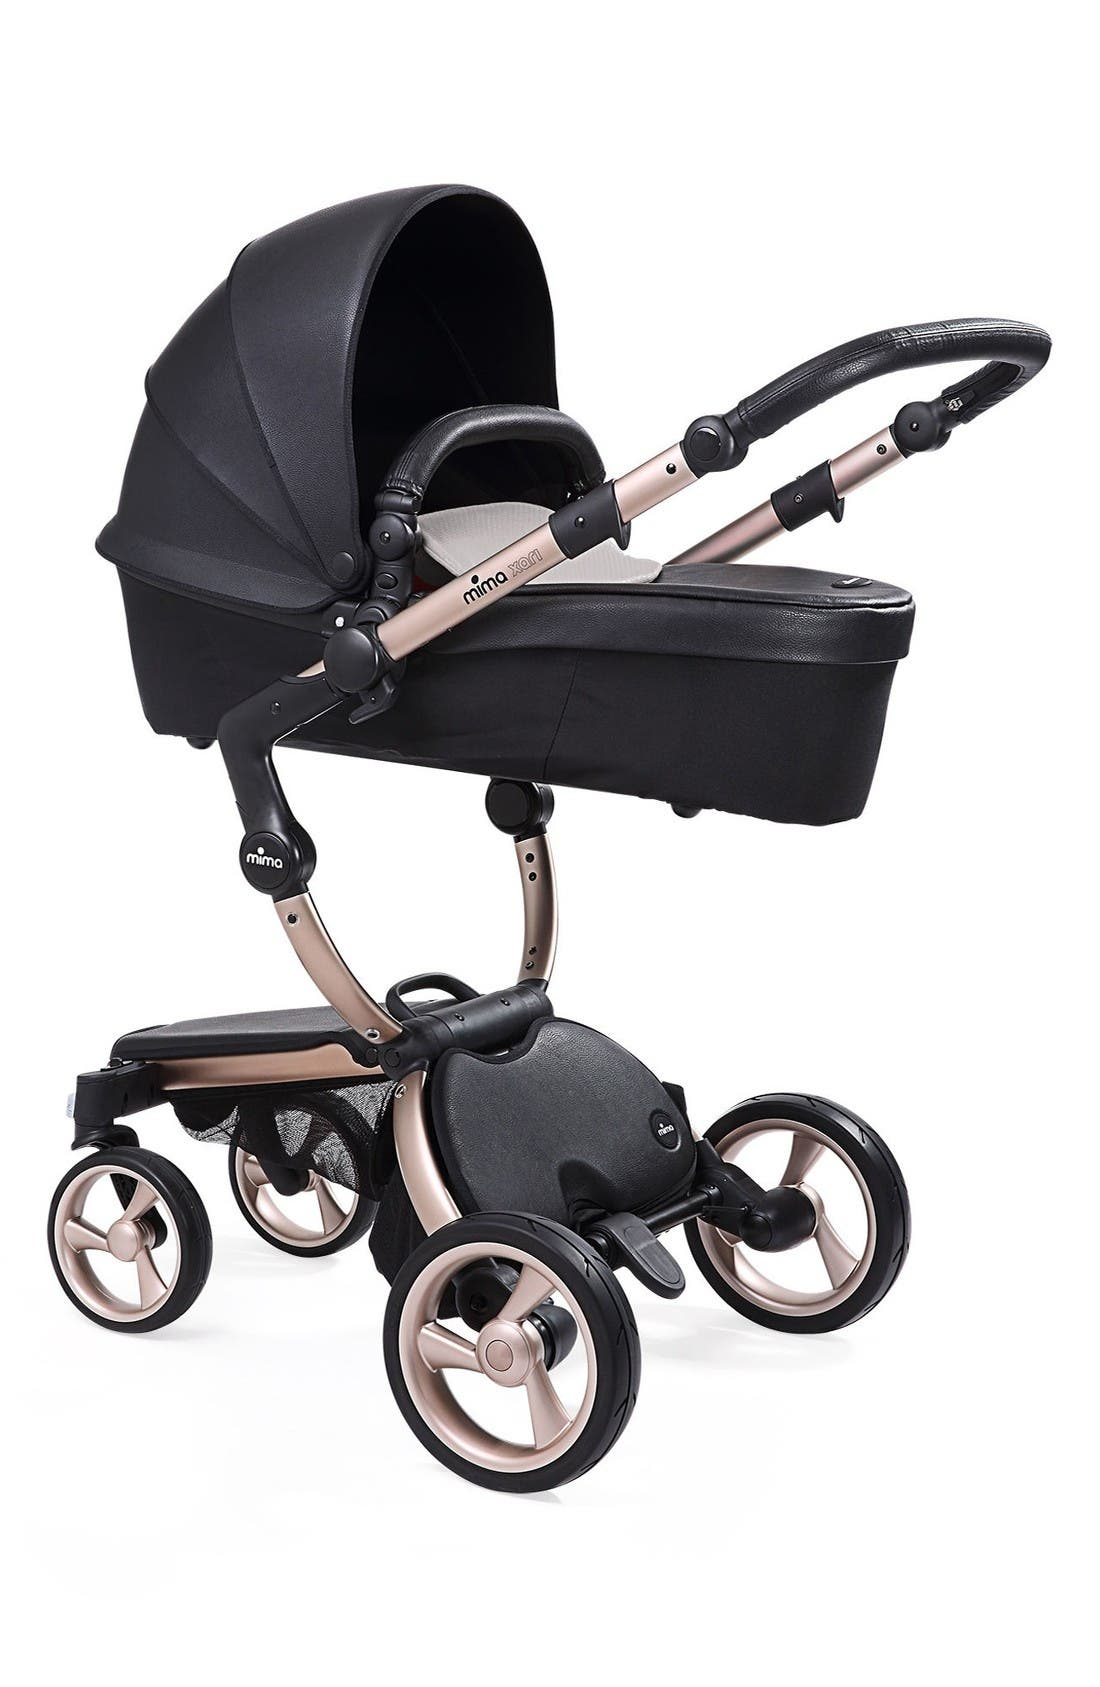 Xari Rose Goldtone Chassis Stroller with Reversible Reclining Seat & Carrycot,                             Main thumbnail 1, color,                             Black/ Sandy Beige